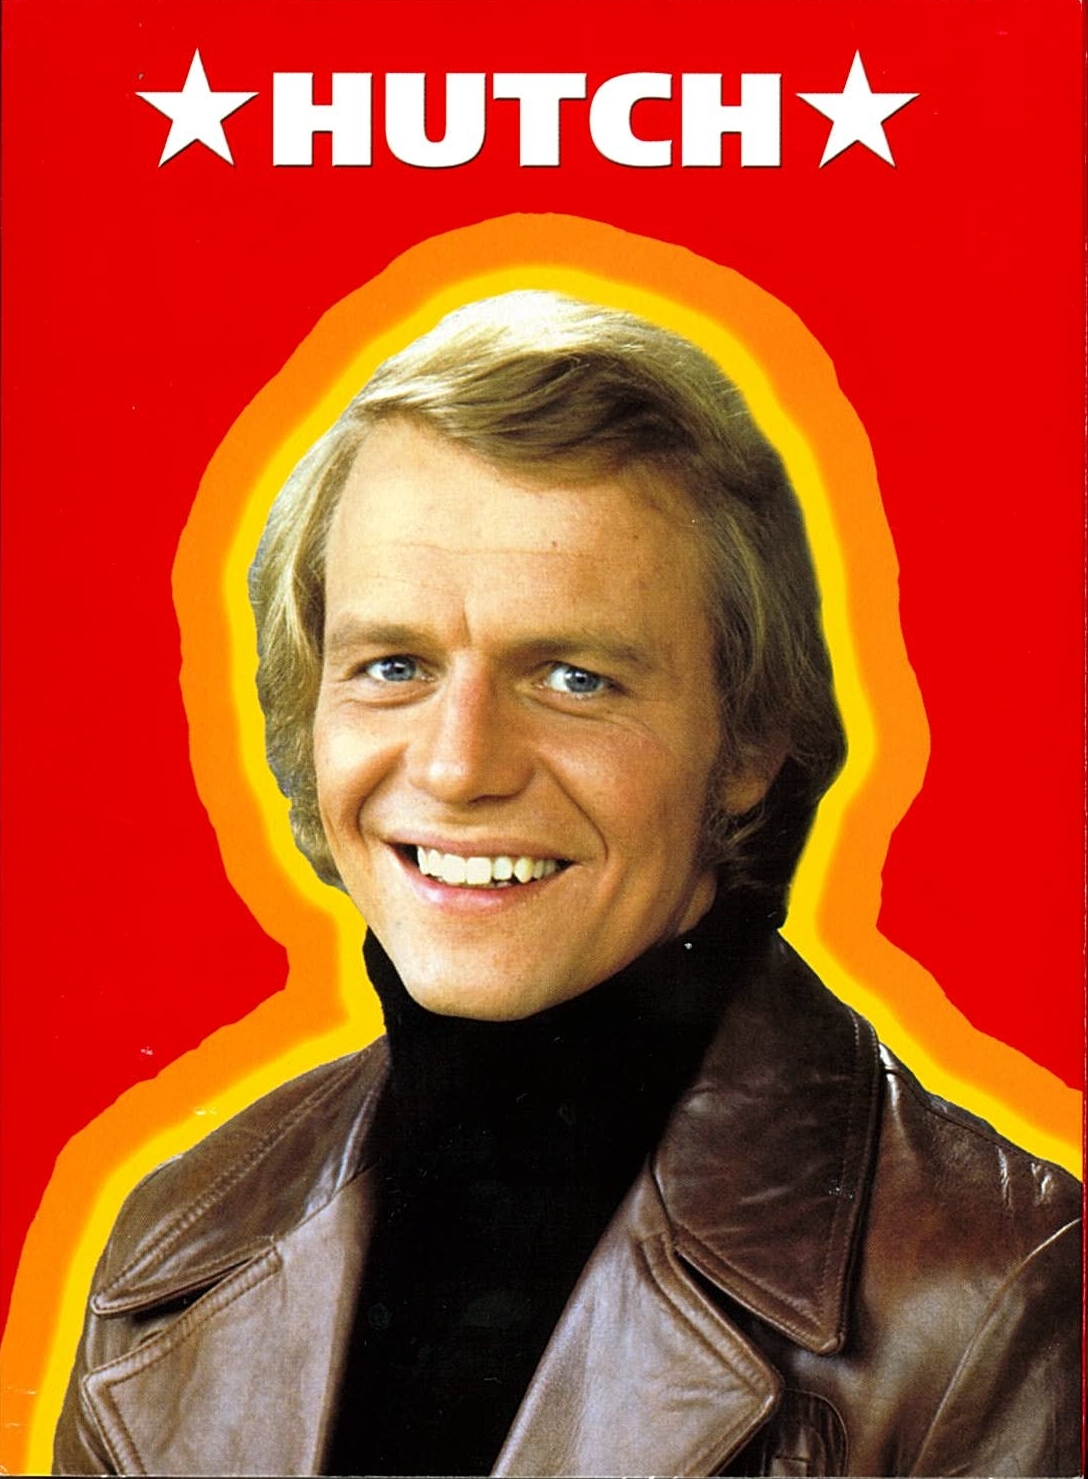 starsky and hutch 1975 images david soul as hutch hd wallpaper and background photos 28698732. Black Bedroom Furniture Sets. Home Design Ideas